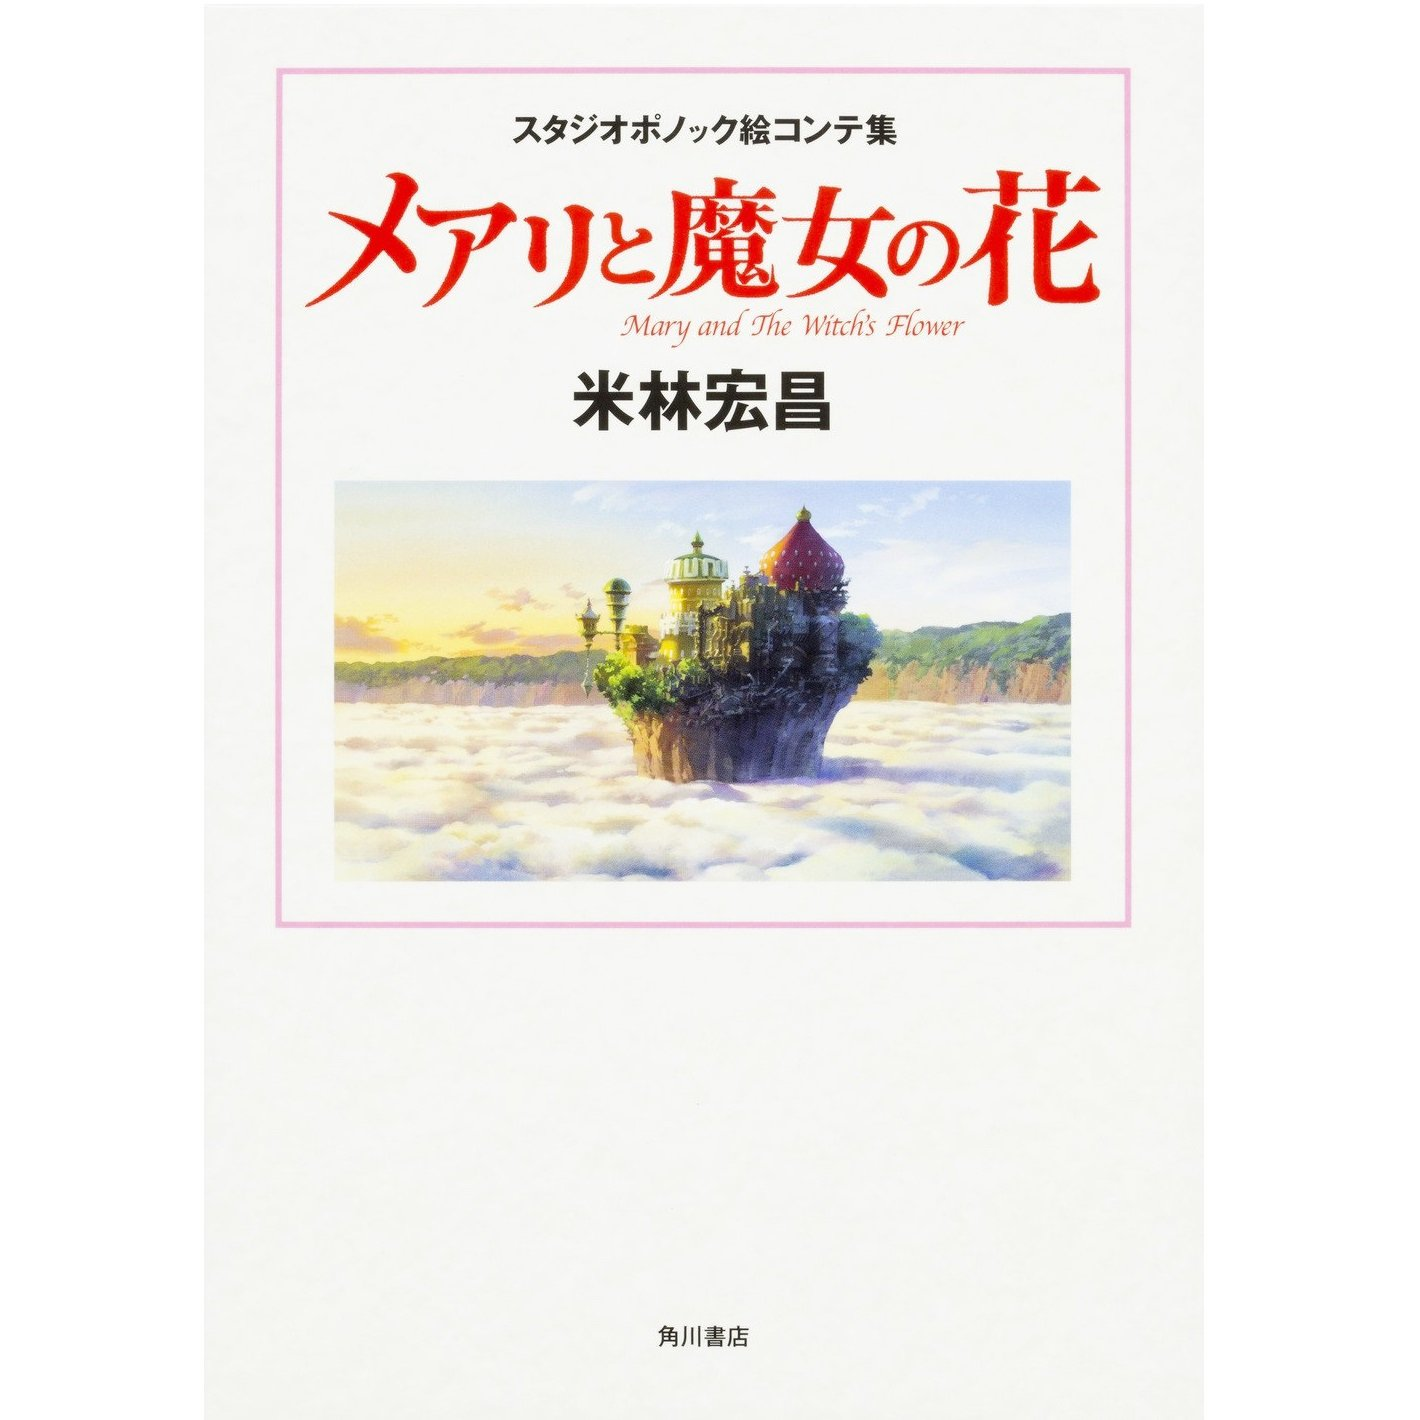 Book - Ekonte Storyboard - Mary and the Witch's Flower / Mary to Majo no Hana - Ghibli - 2017 (new)